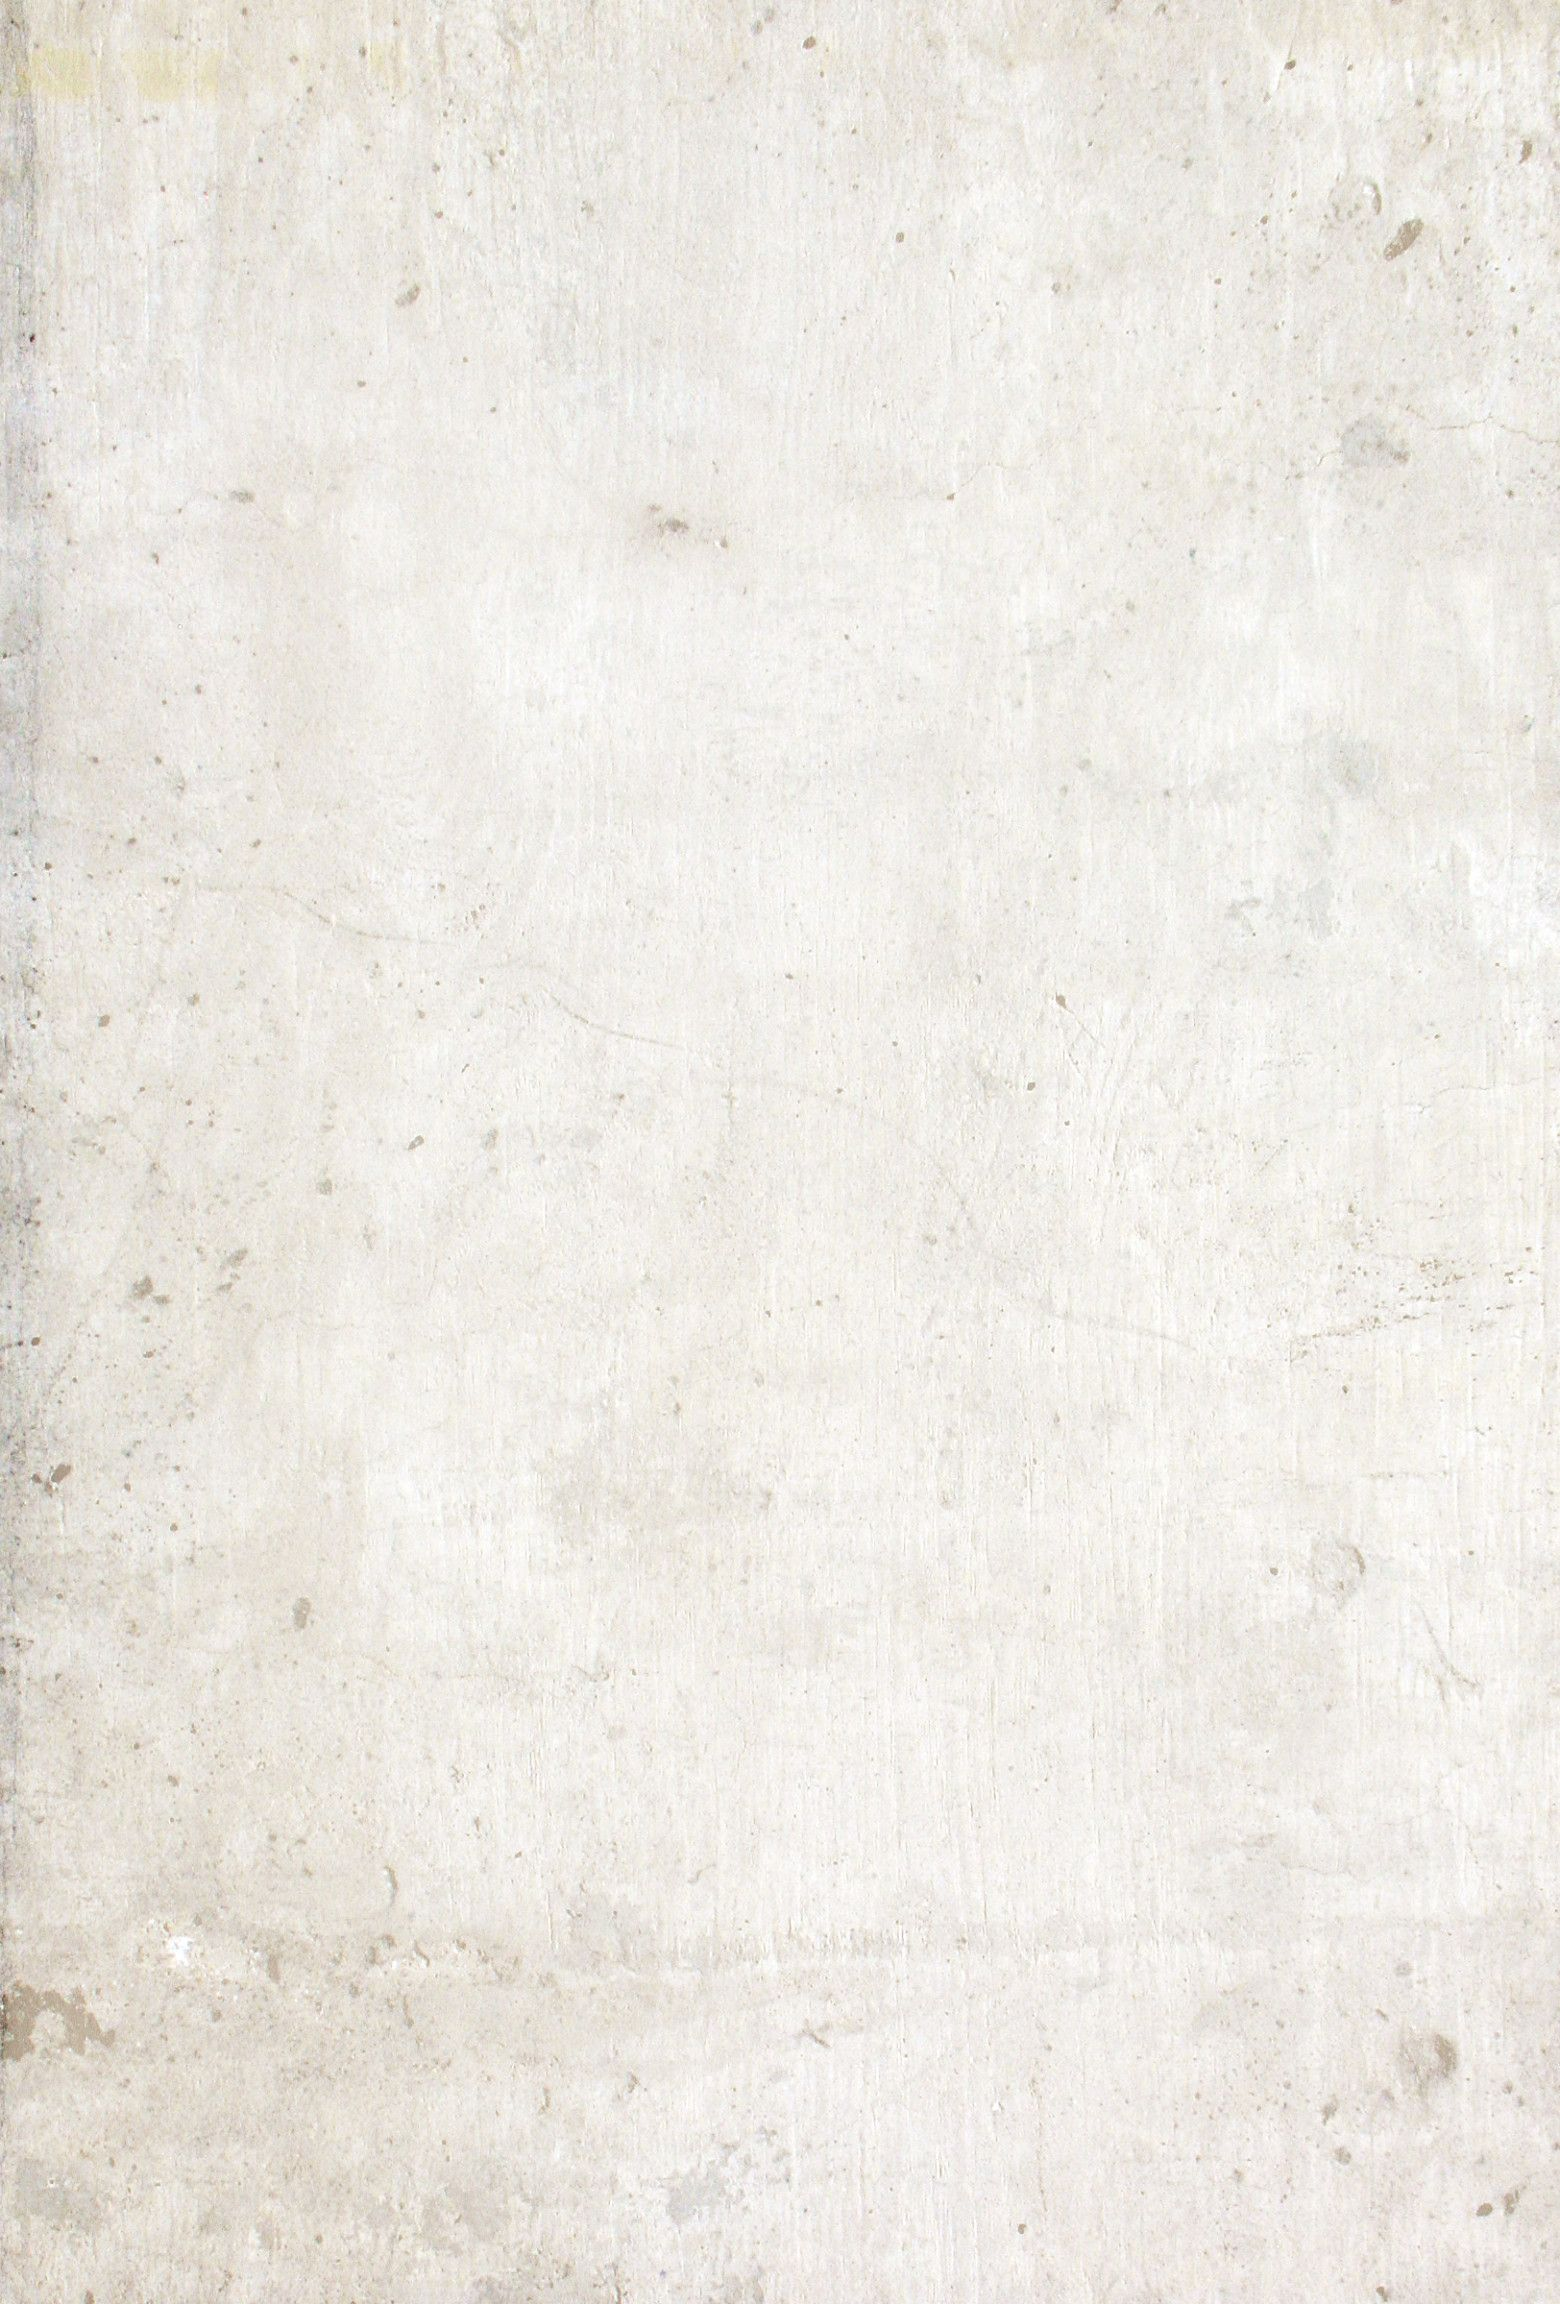 Dirty White Grunge Texture In 2019 Texuture Texture